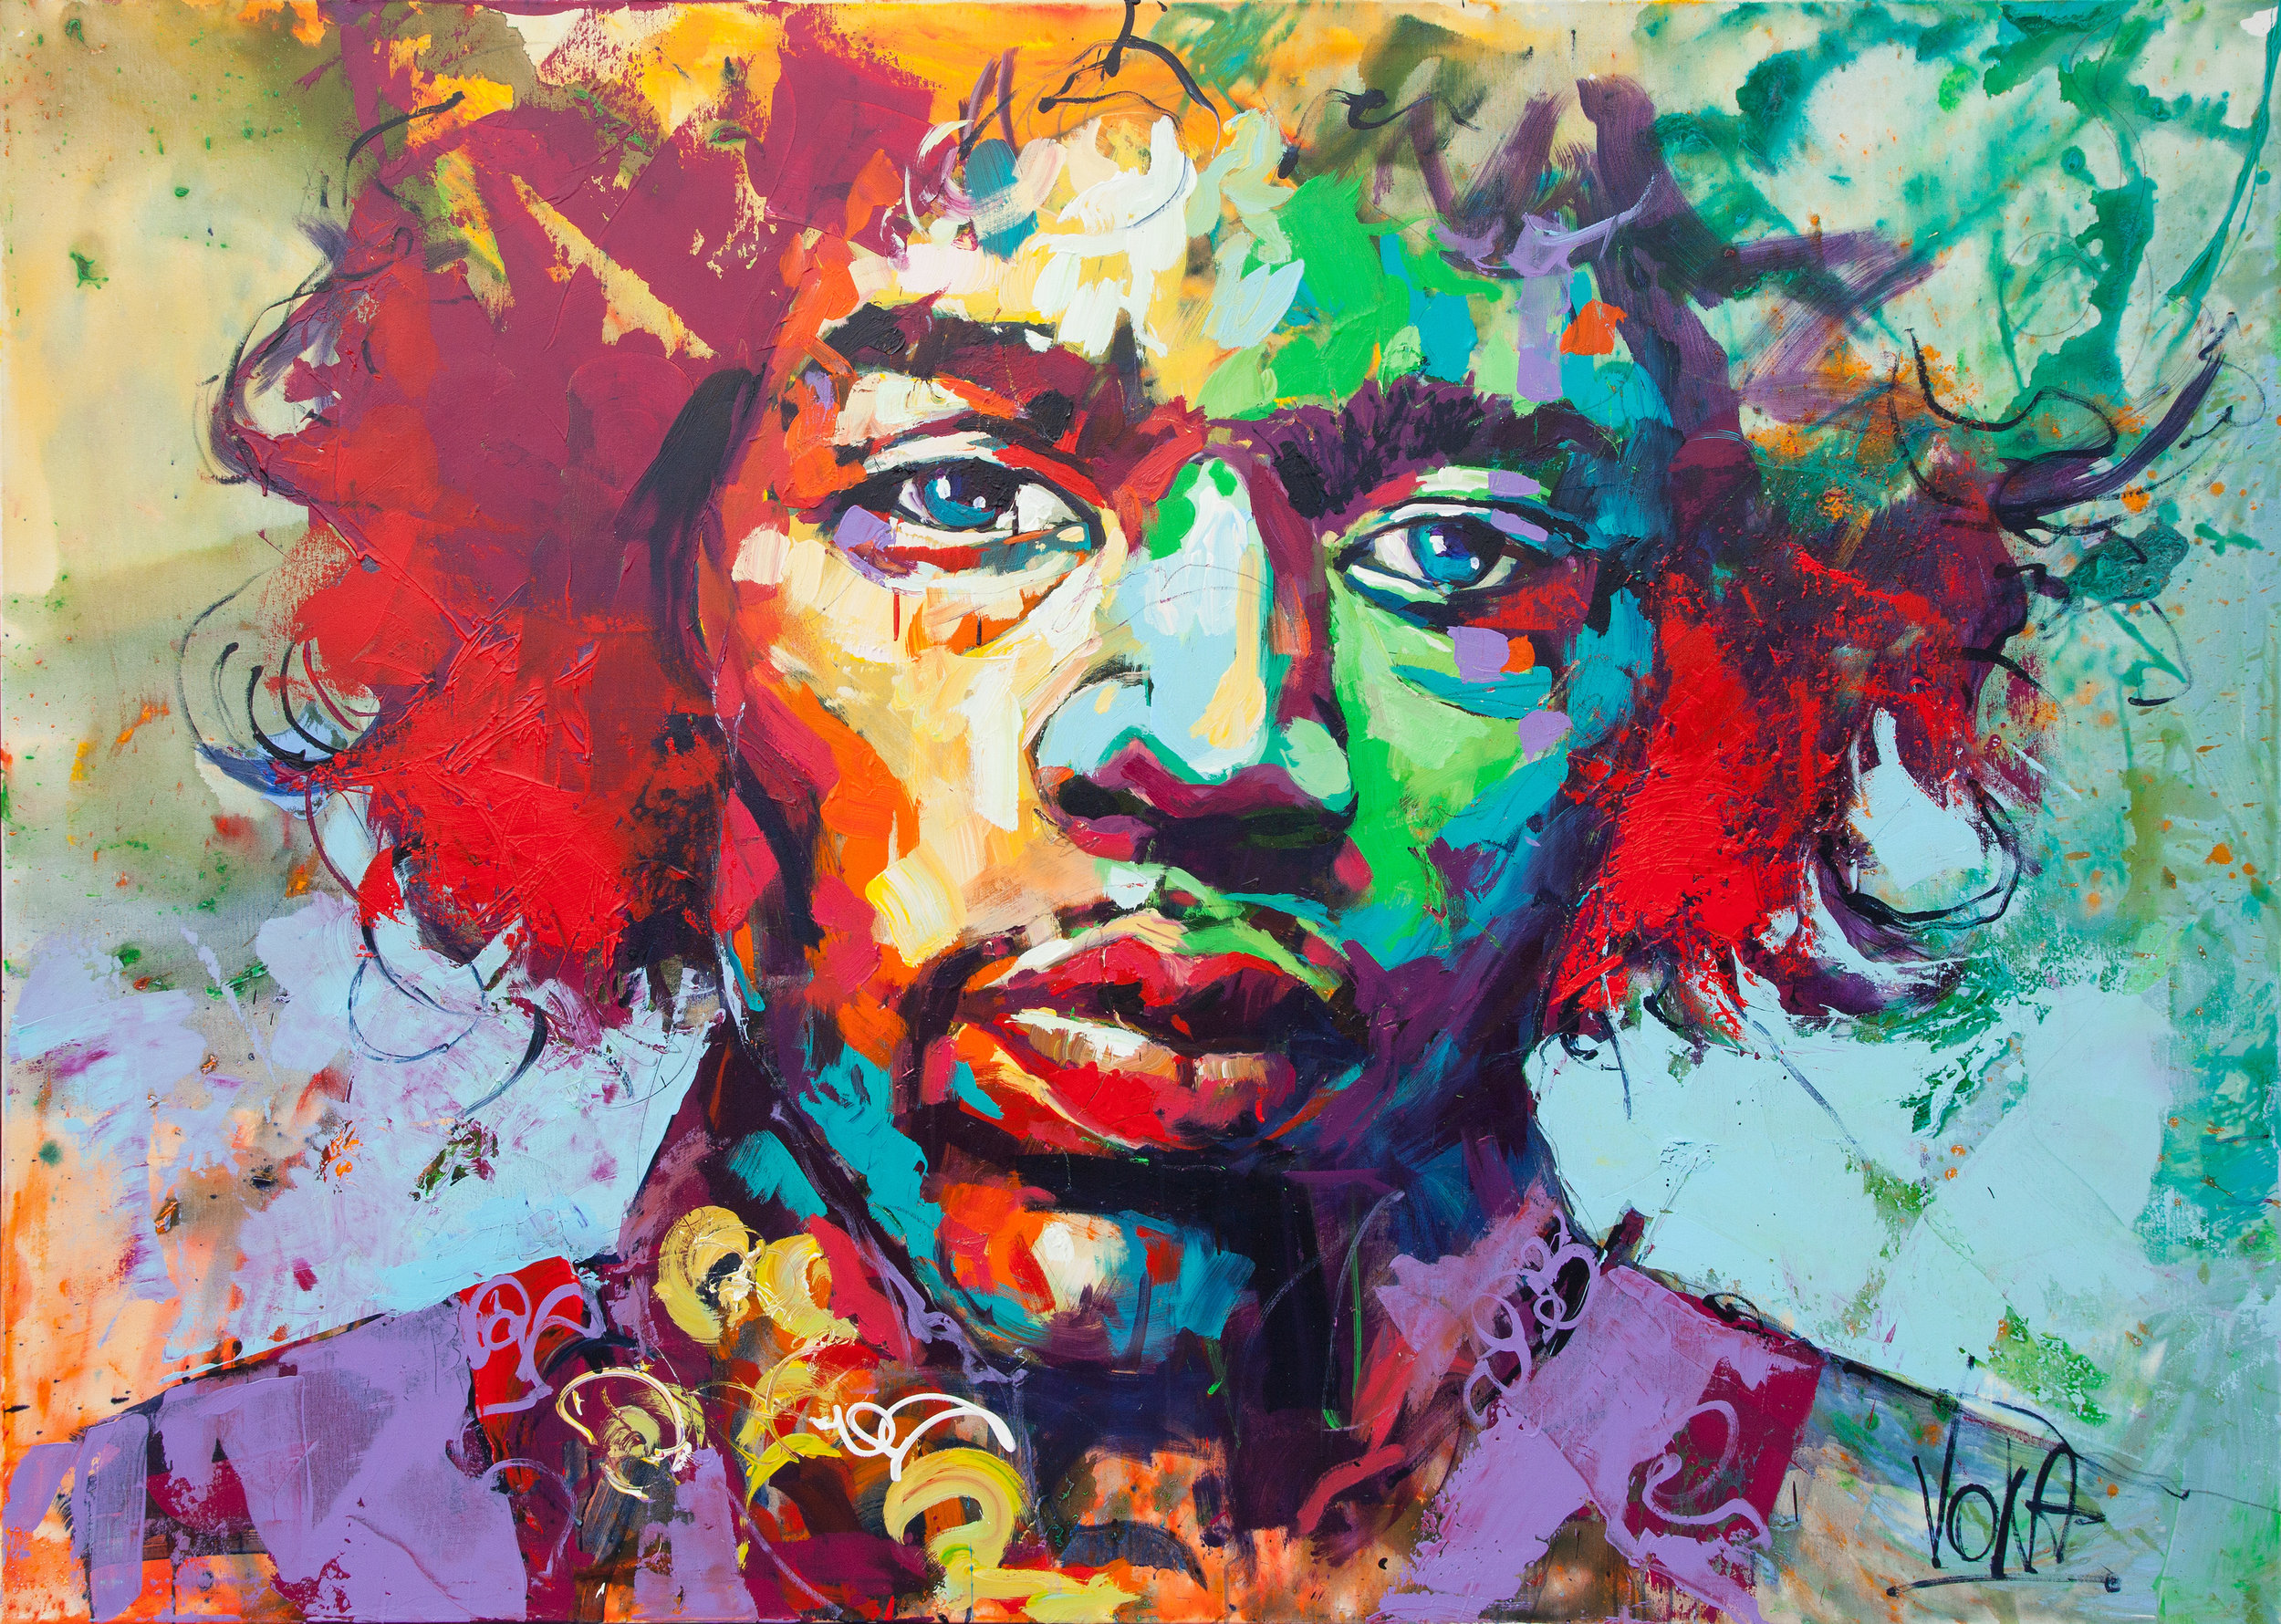 Jimi, 150x200 cm/59,1x78,7 inch, Acrylic on Canvas